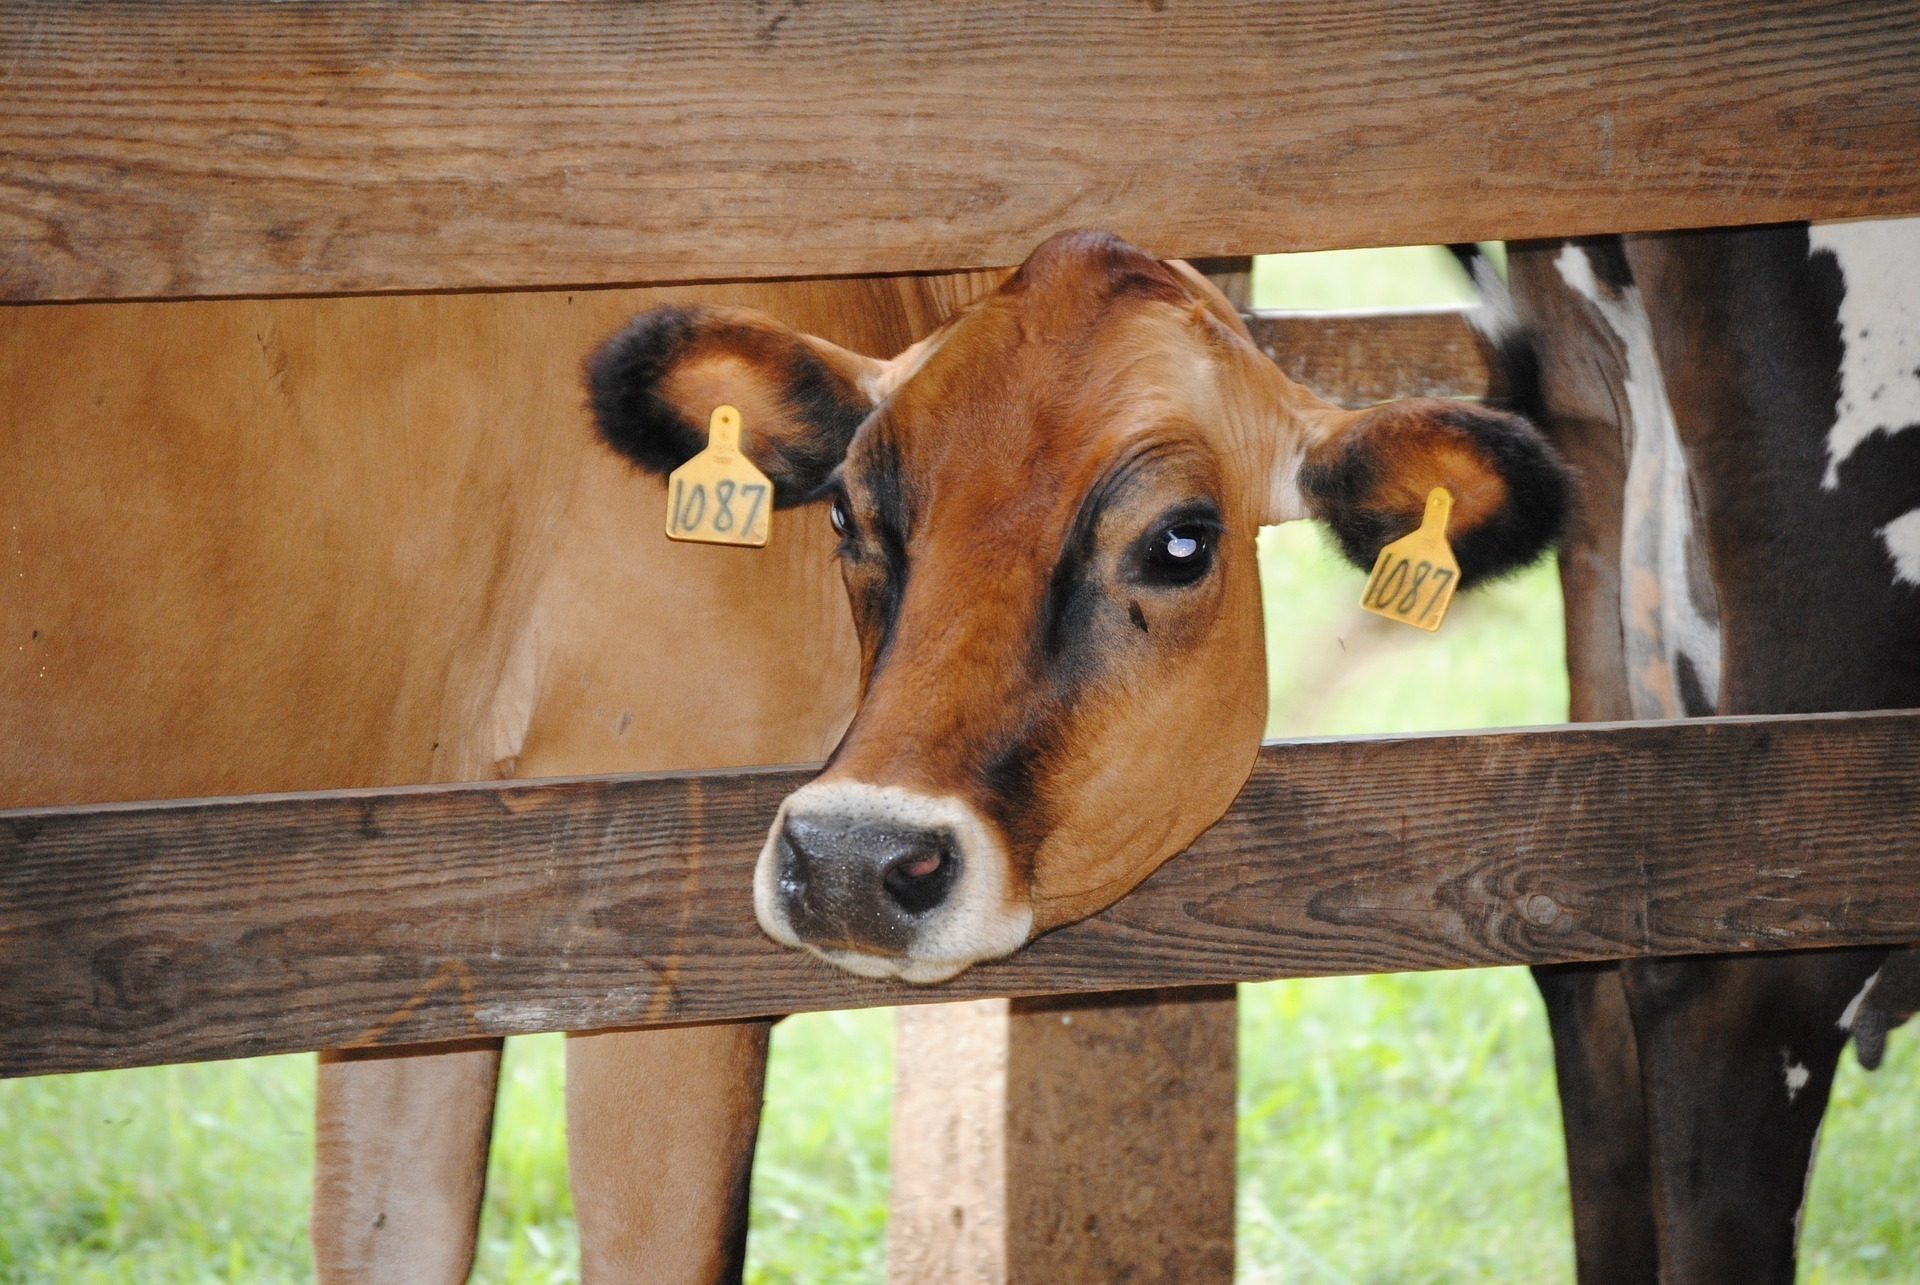 Find out how Raw Milk can help those who are lactose intolerant or with a dairy allergy.